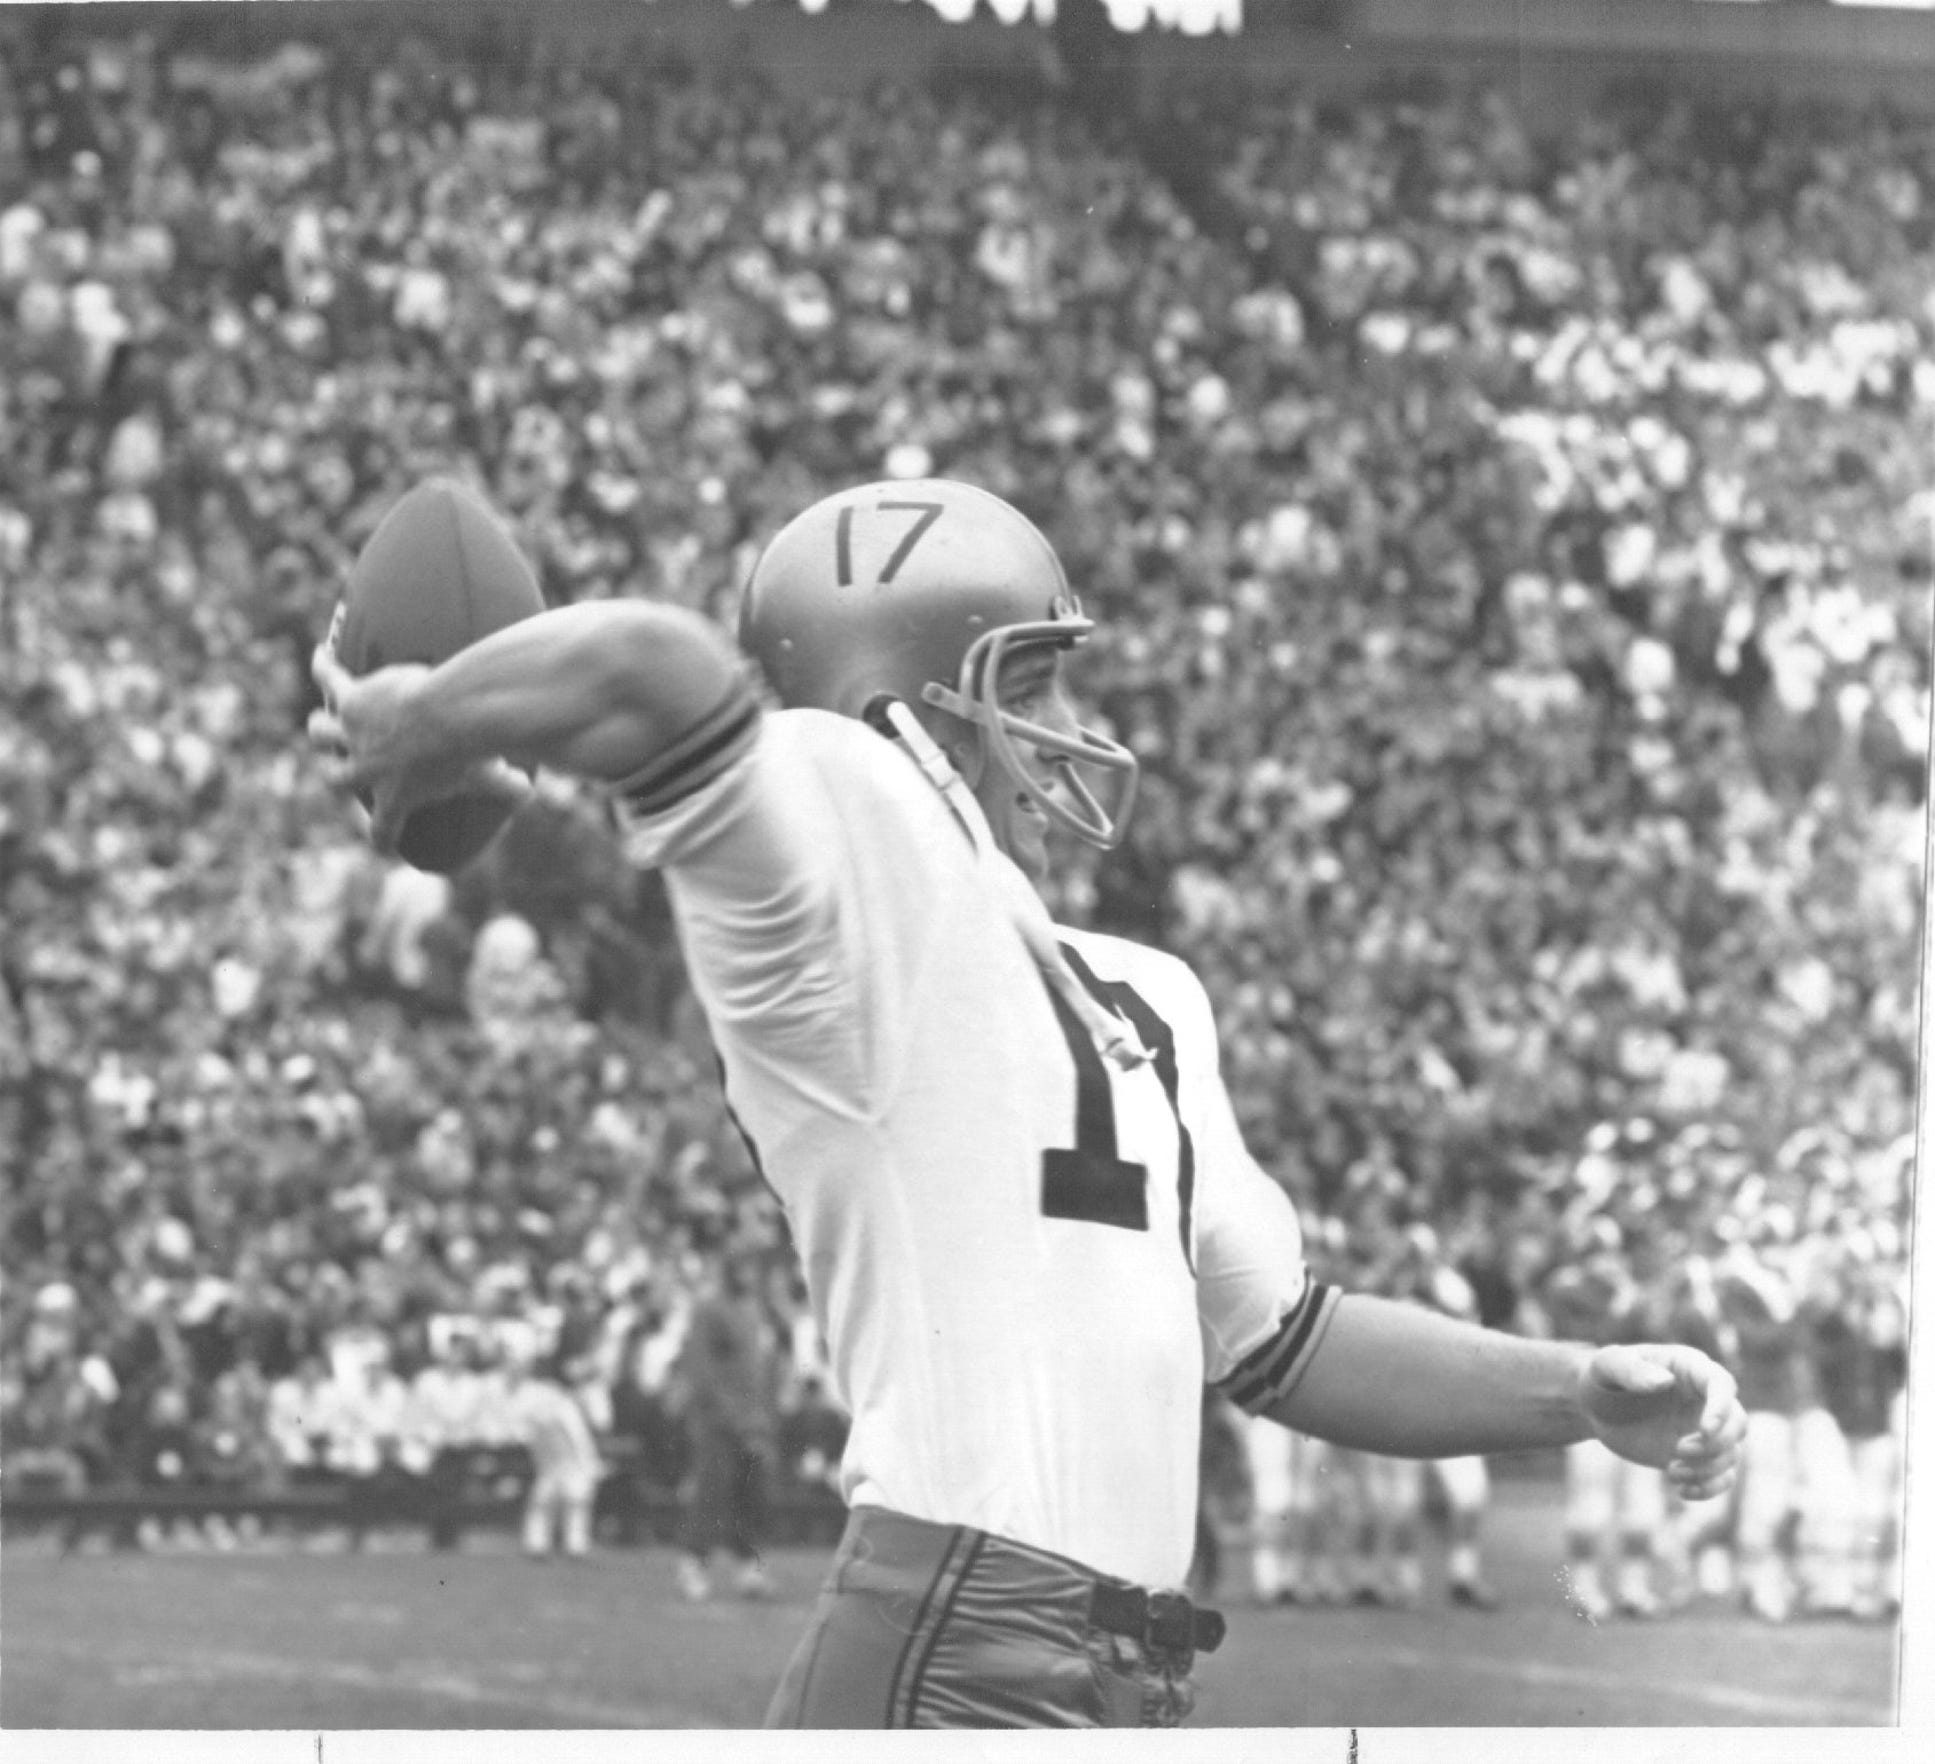 Ron DiGravio was the Big Ten Conferencre passing champion in 1963.